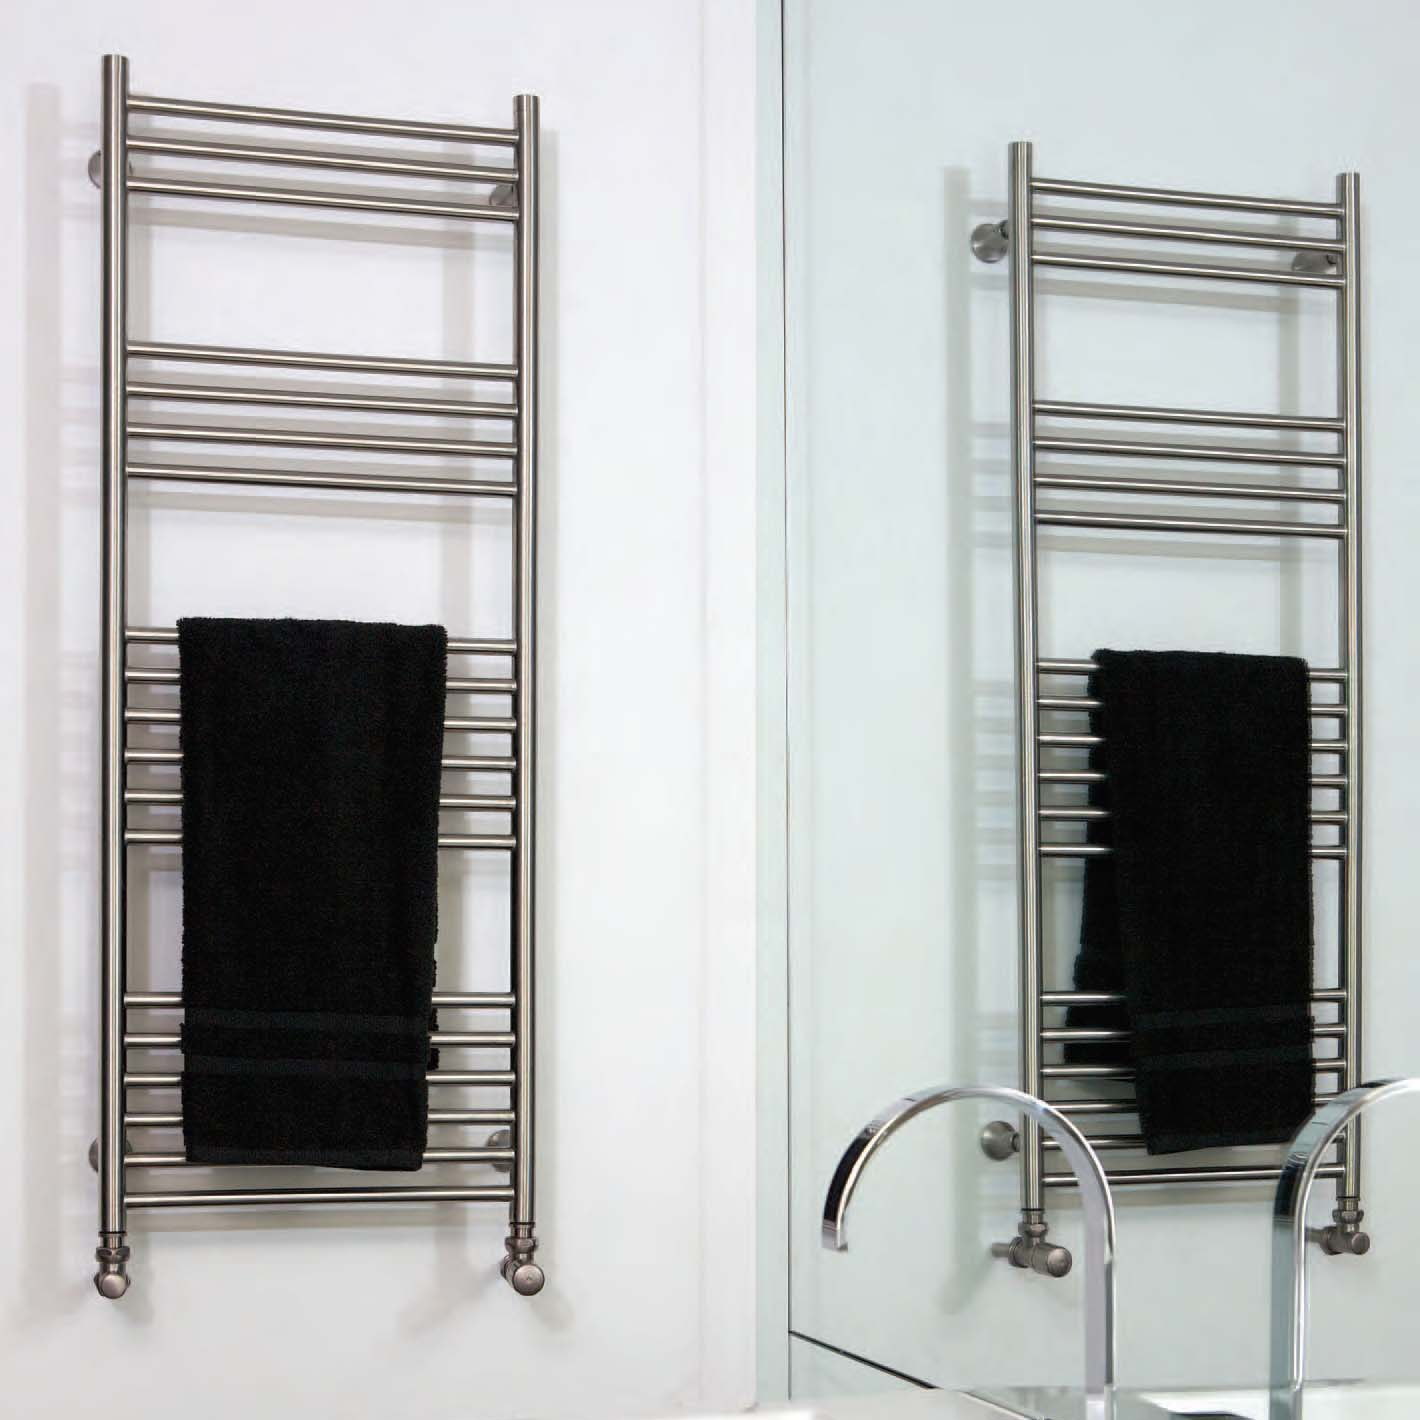 Aeon Towel Rails | Stainless Steel Towel Rails - NWT Direct